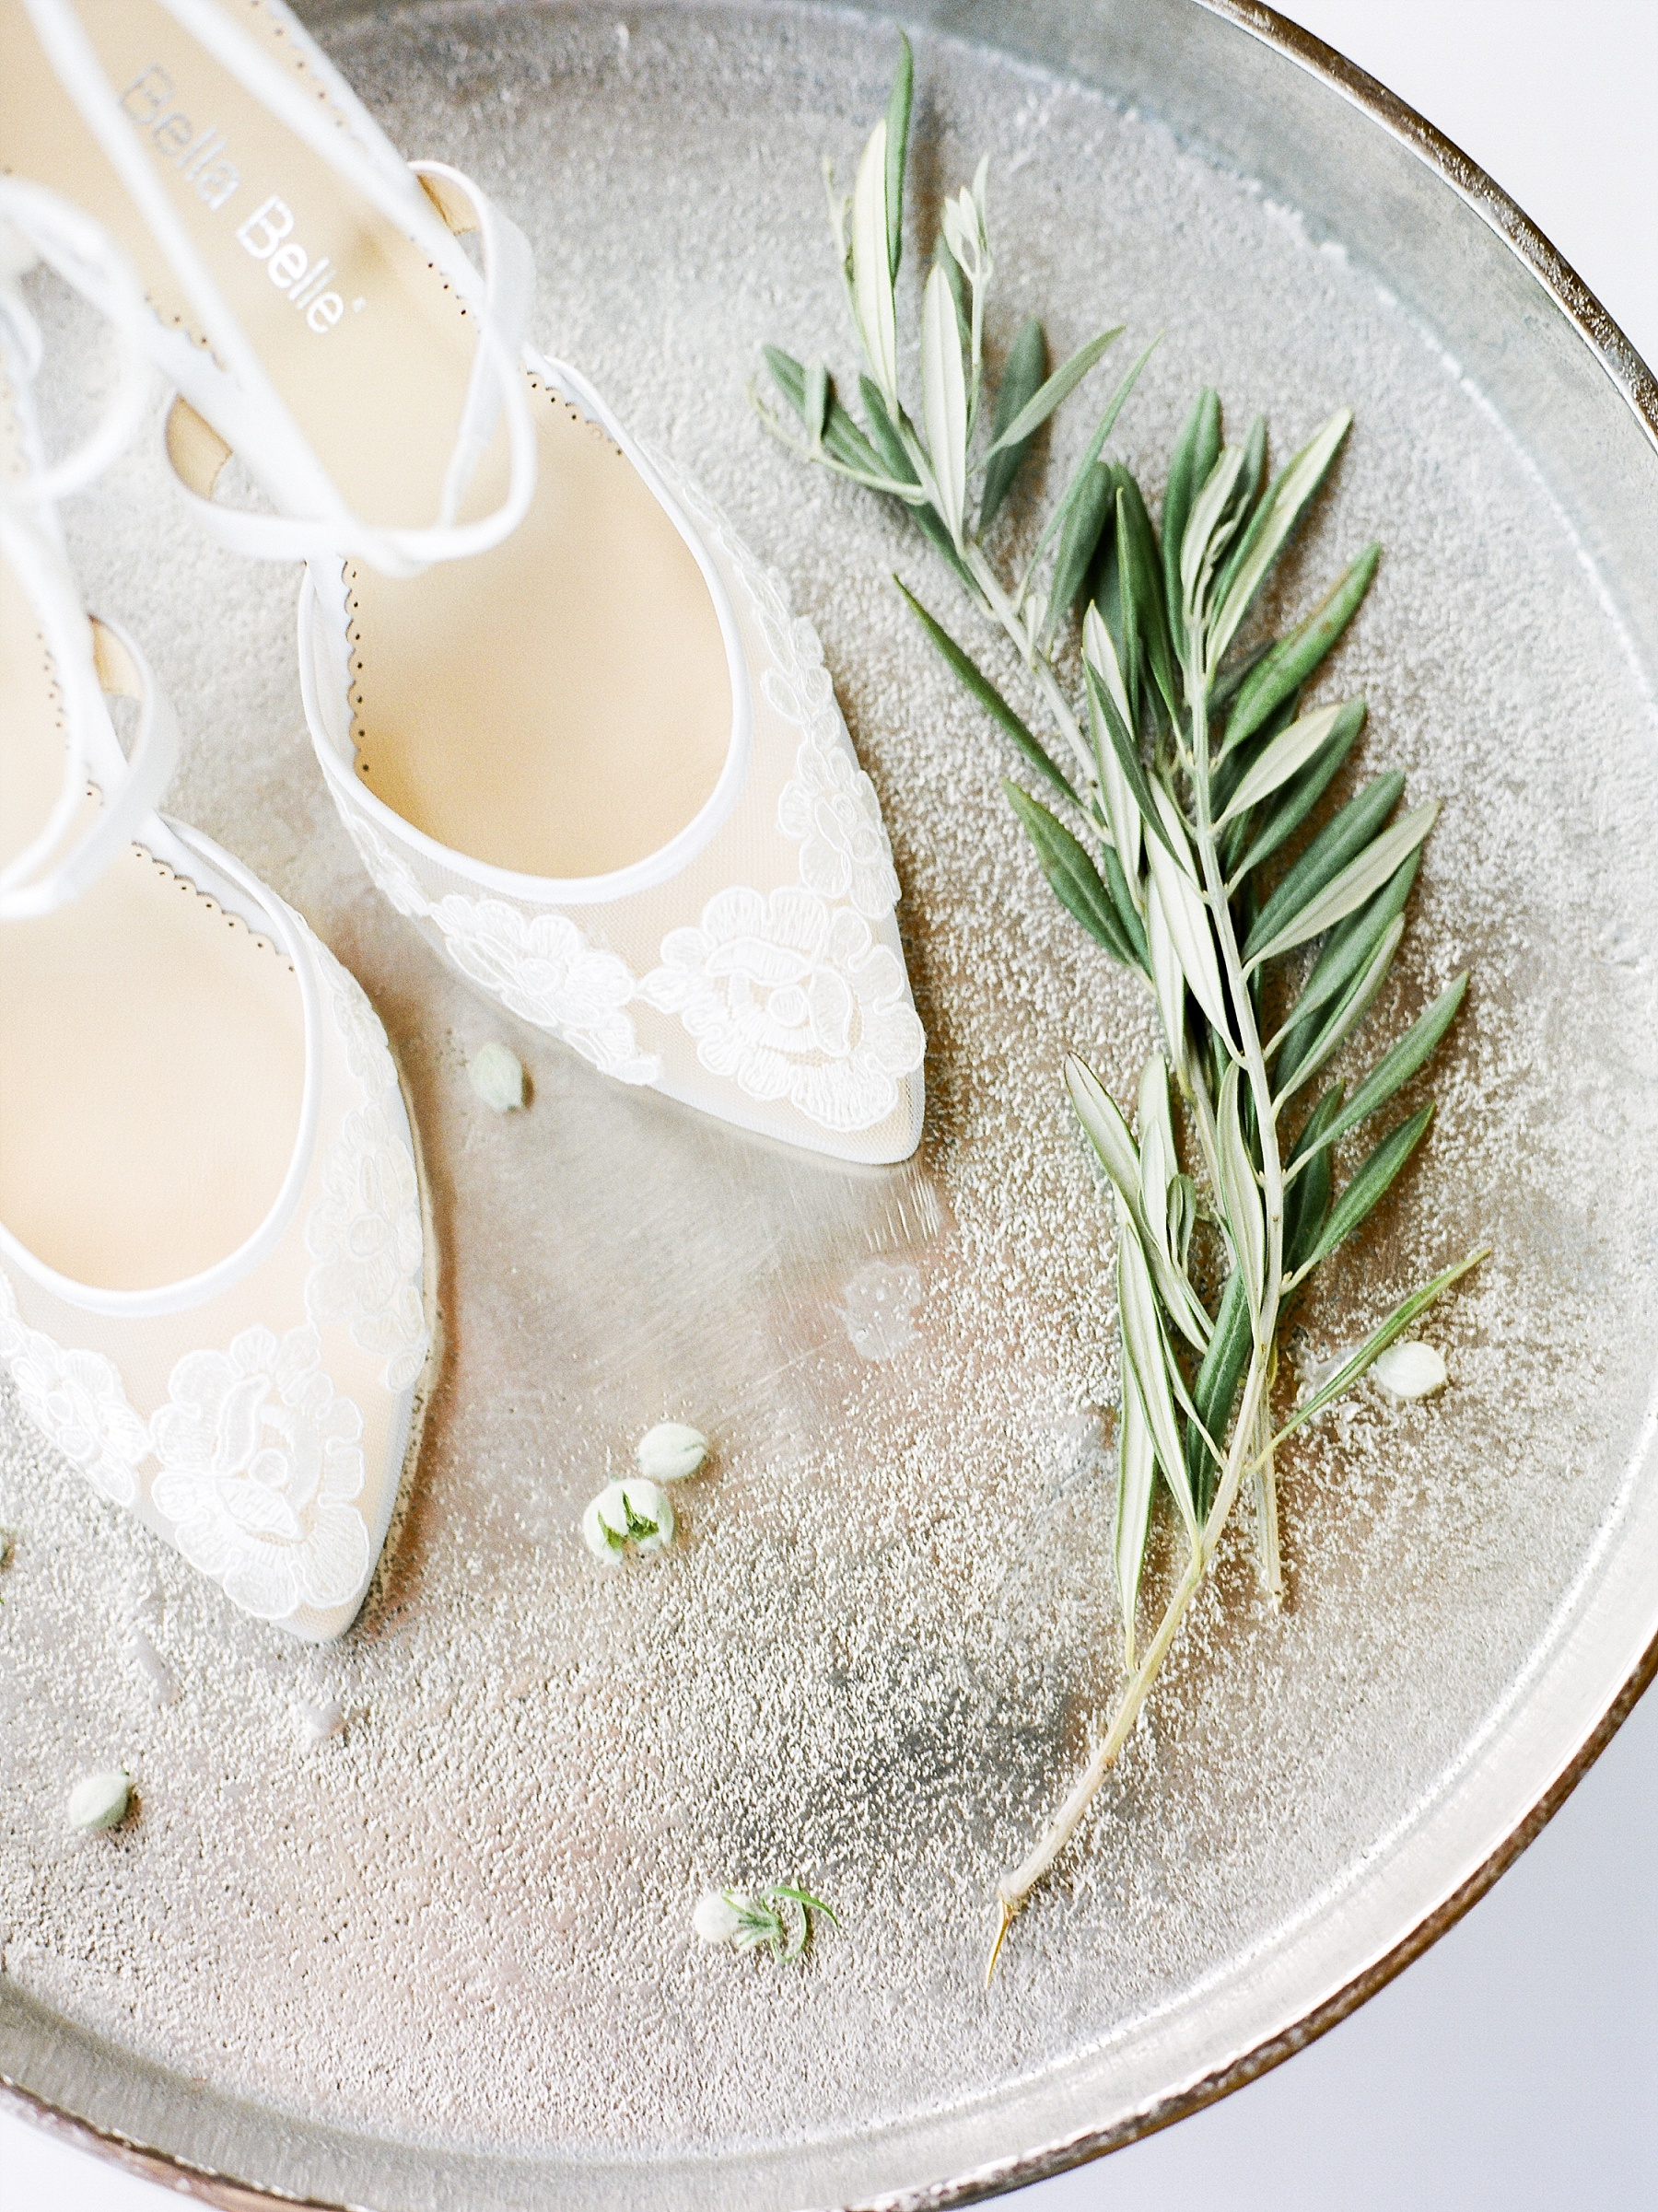 Textural Organic Wedding in All White Venue by Kelsi Kliethermes Wedding Photographer - Missouri, Midwest, and Destinations_0018.jpg